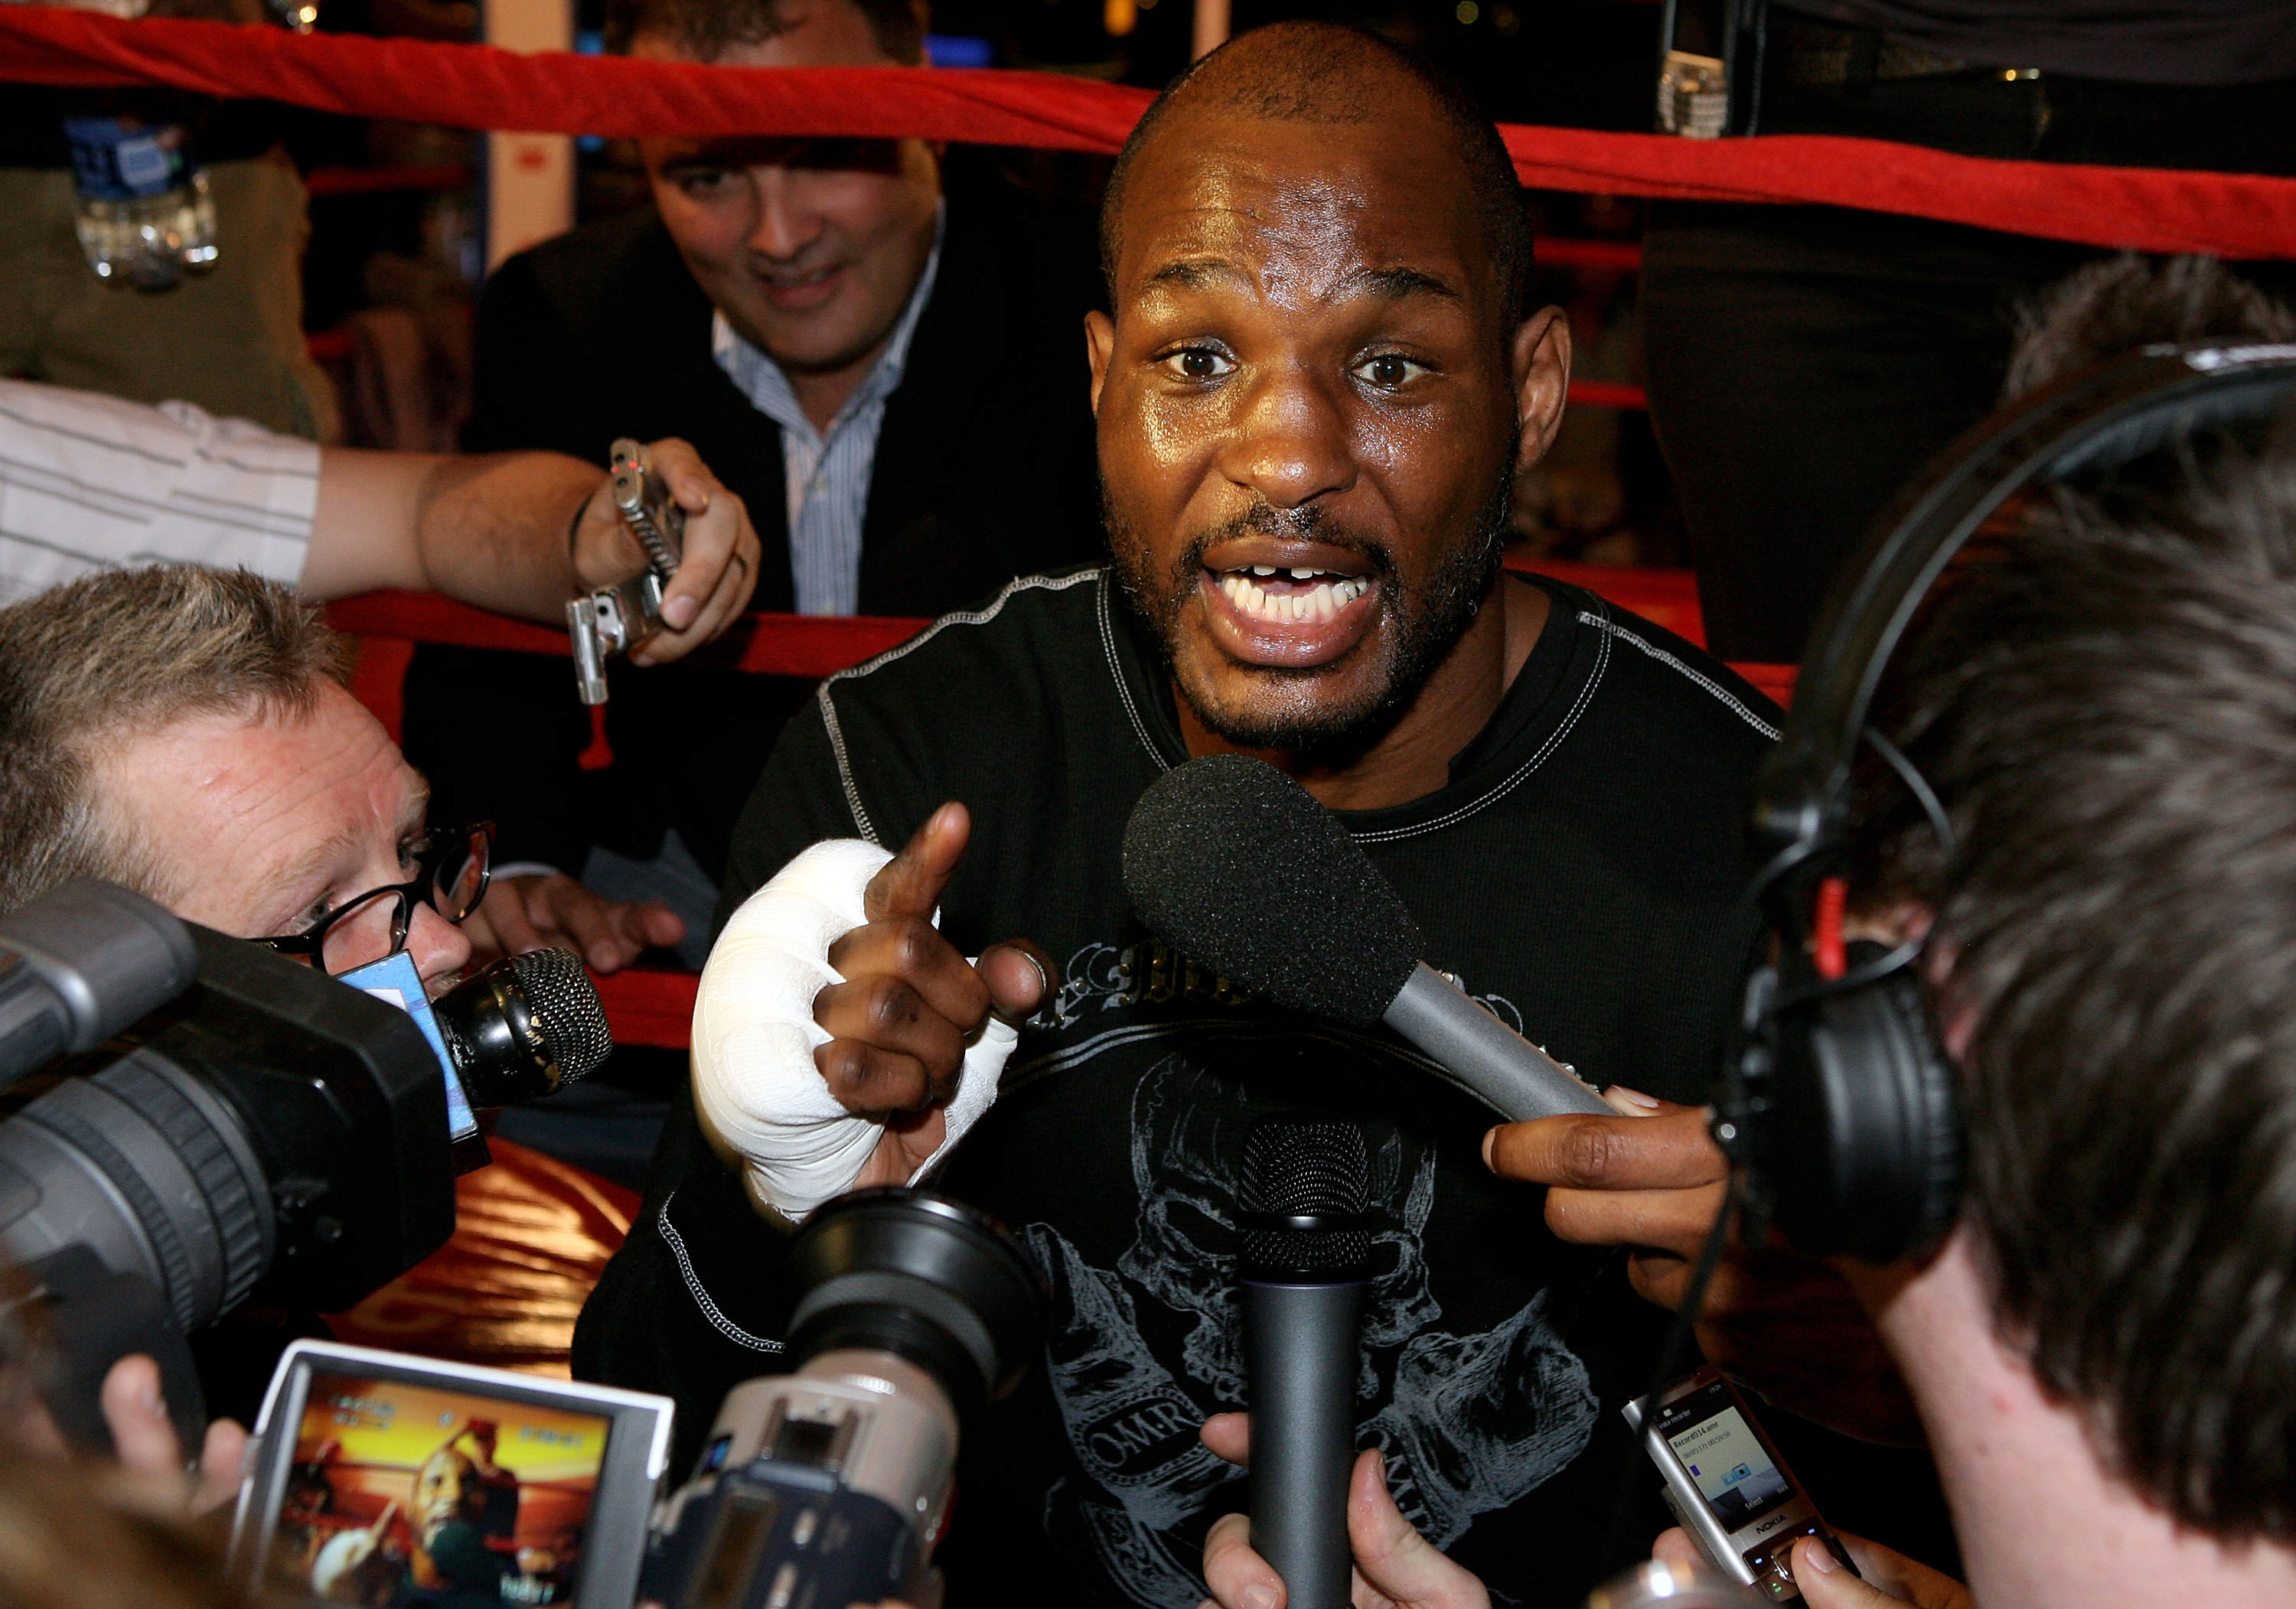 LAS VEGAS - APRIL 15:  Bernard Hopkins of the USA meets the media before his open workout  at Planet Hollywood Resort and Casino on April 15, 2008 in Las Vegas, Nevada.  (Photo by John Gichigi/Getty Images)